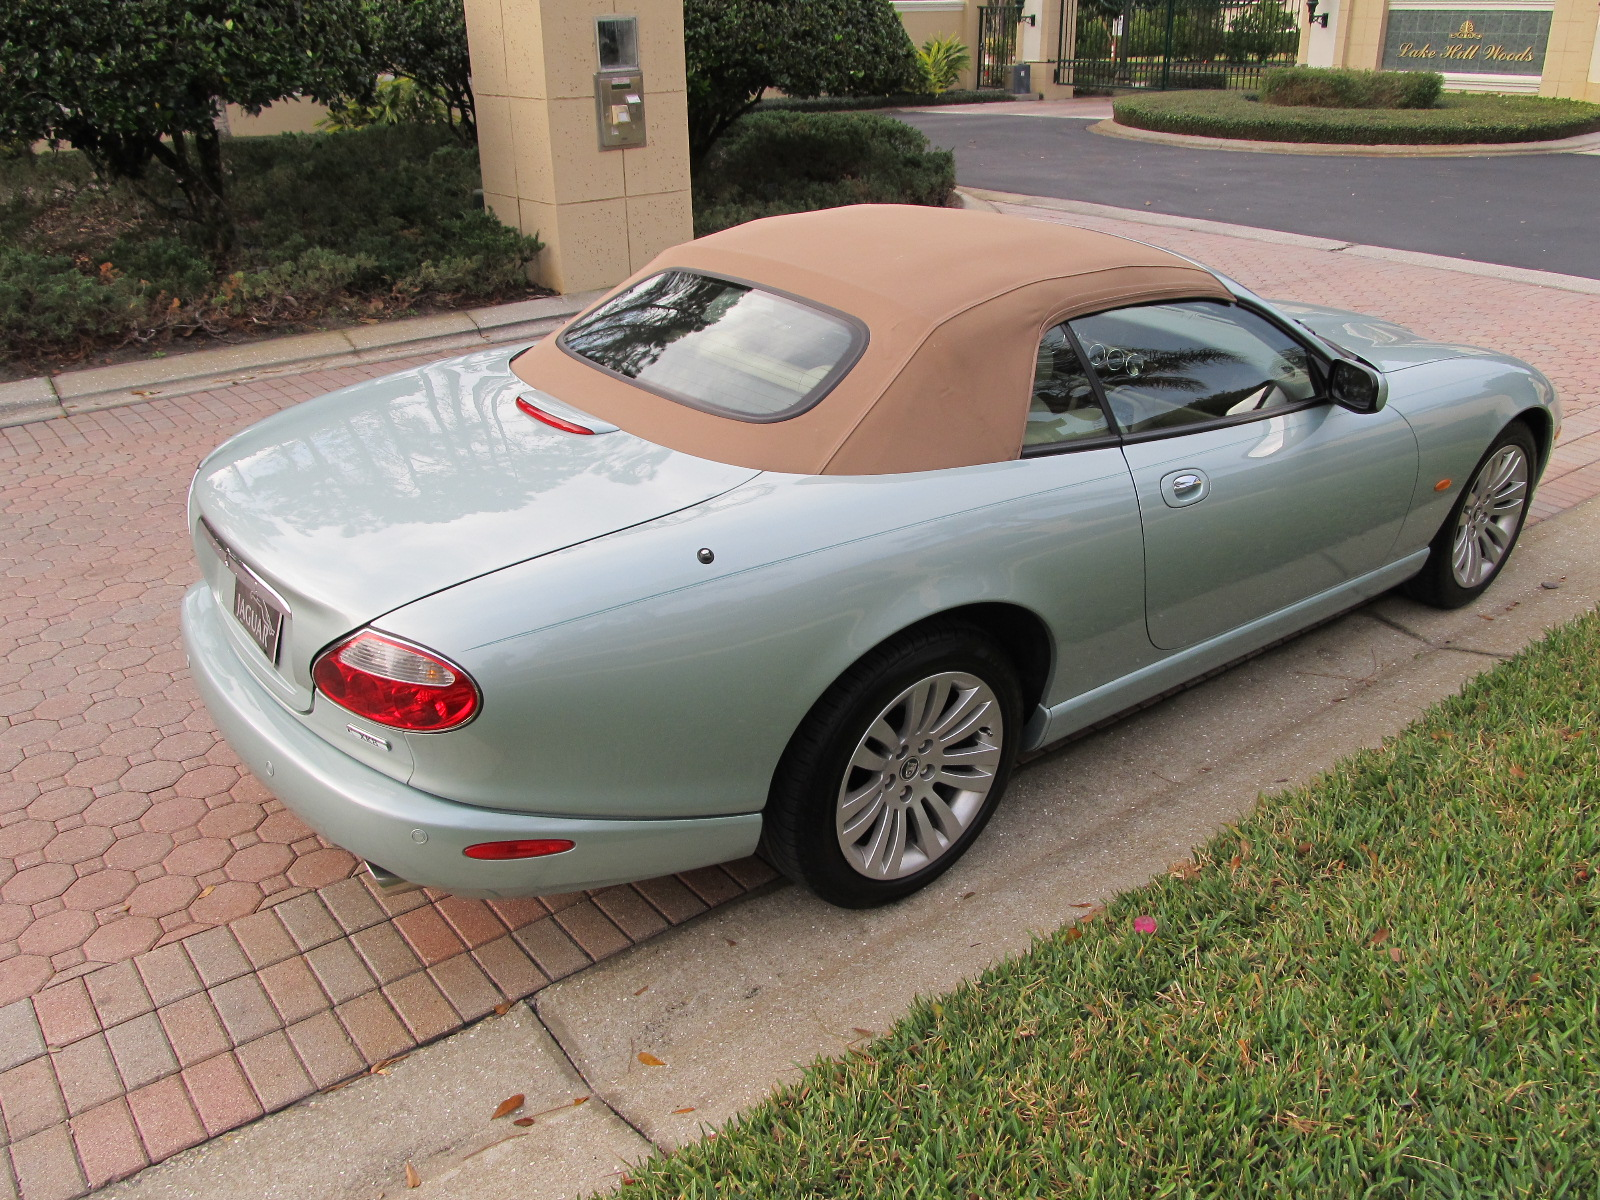 xk convertible for metallic hampshire roof sale in jaguar used with hide oatmeal blue petrol pacific